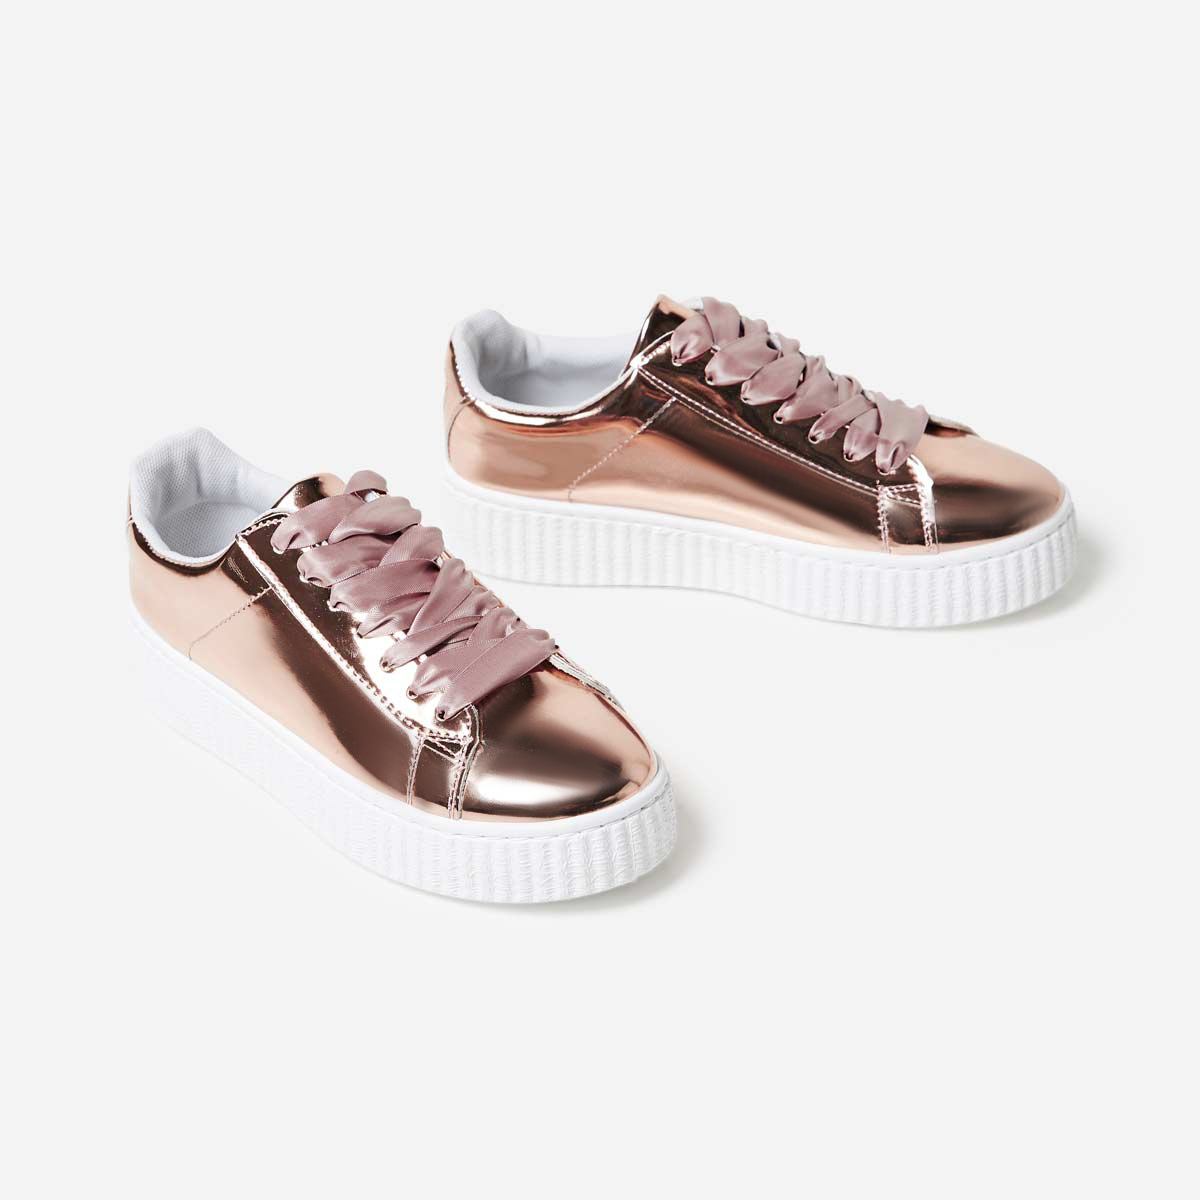 Cece Lace Up Creeper Trainer In Rold Gold Faux Leather Image 1